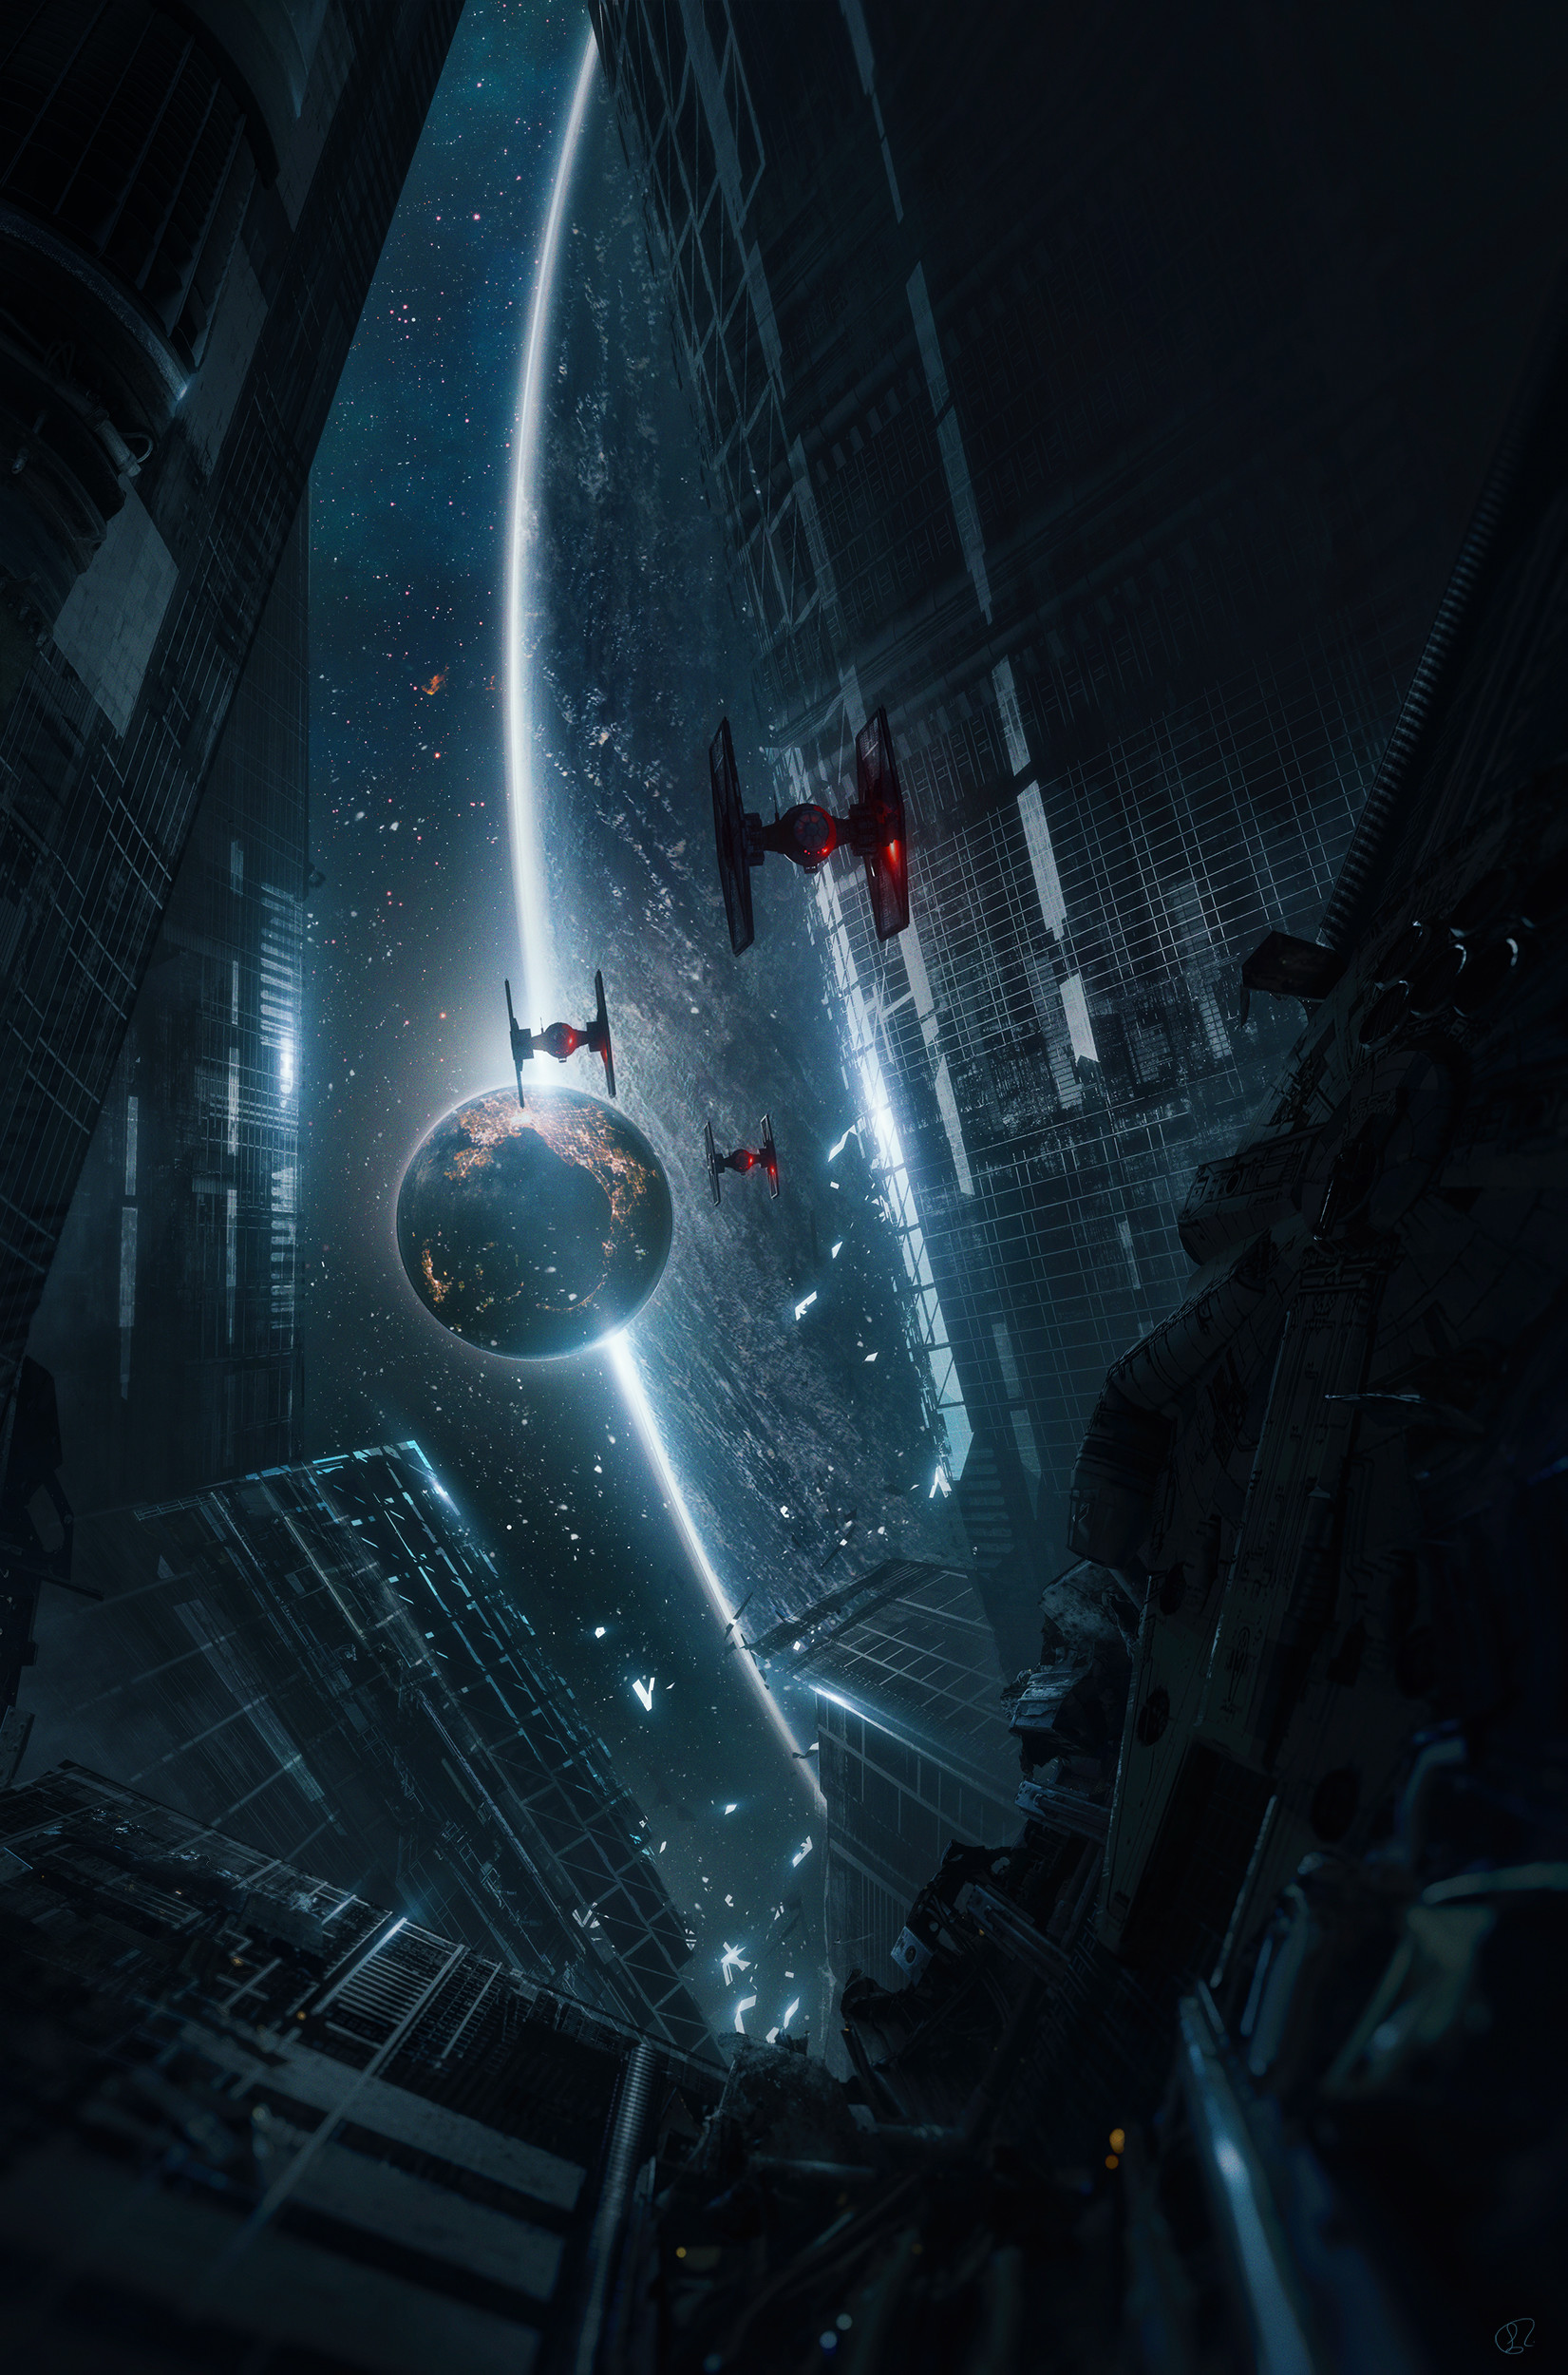 Jessica rossier hide and seek fanart starwars the last jedi jessica rossier